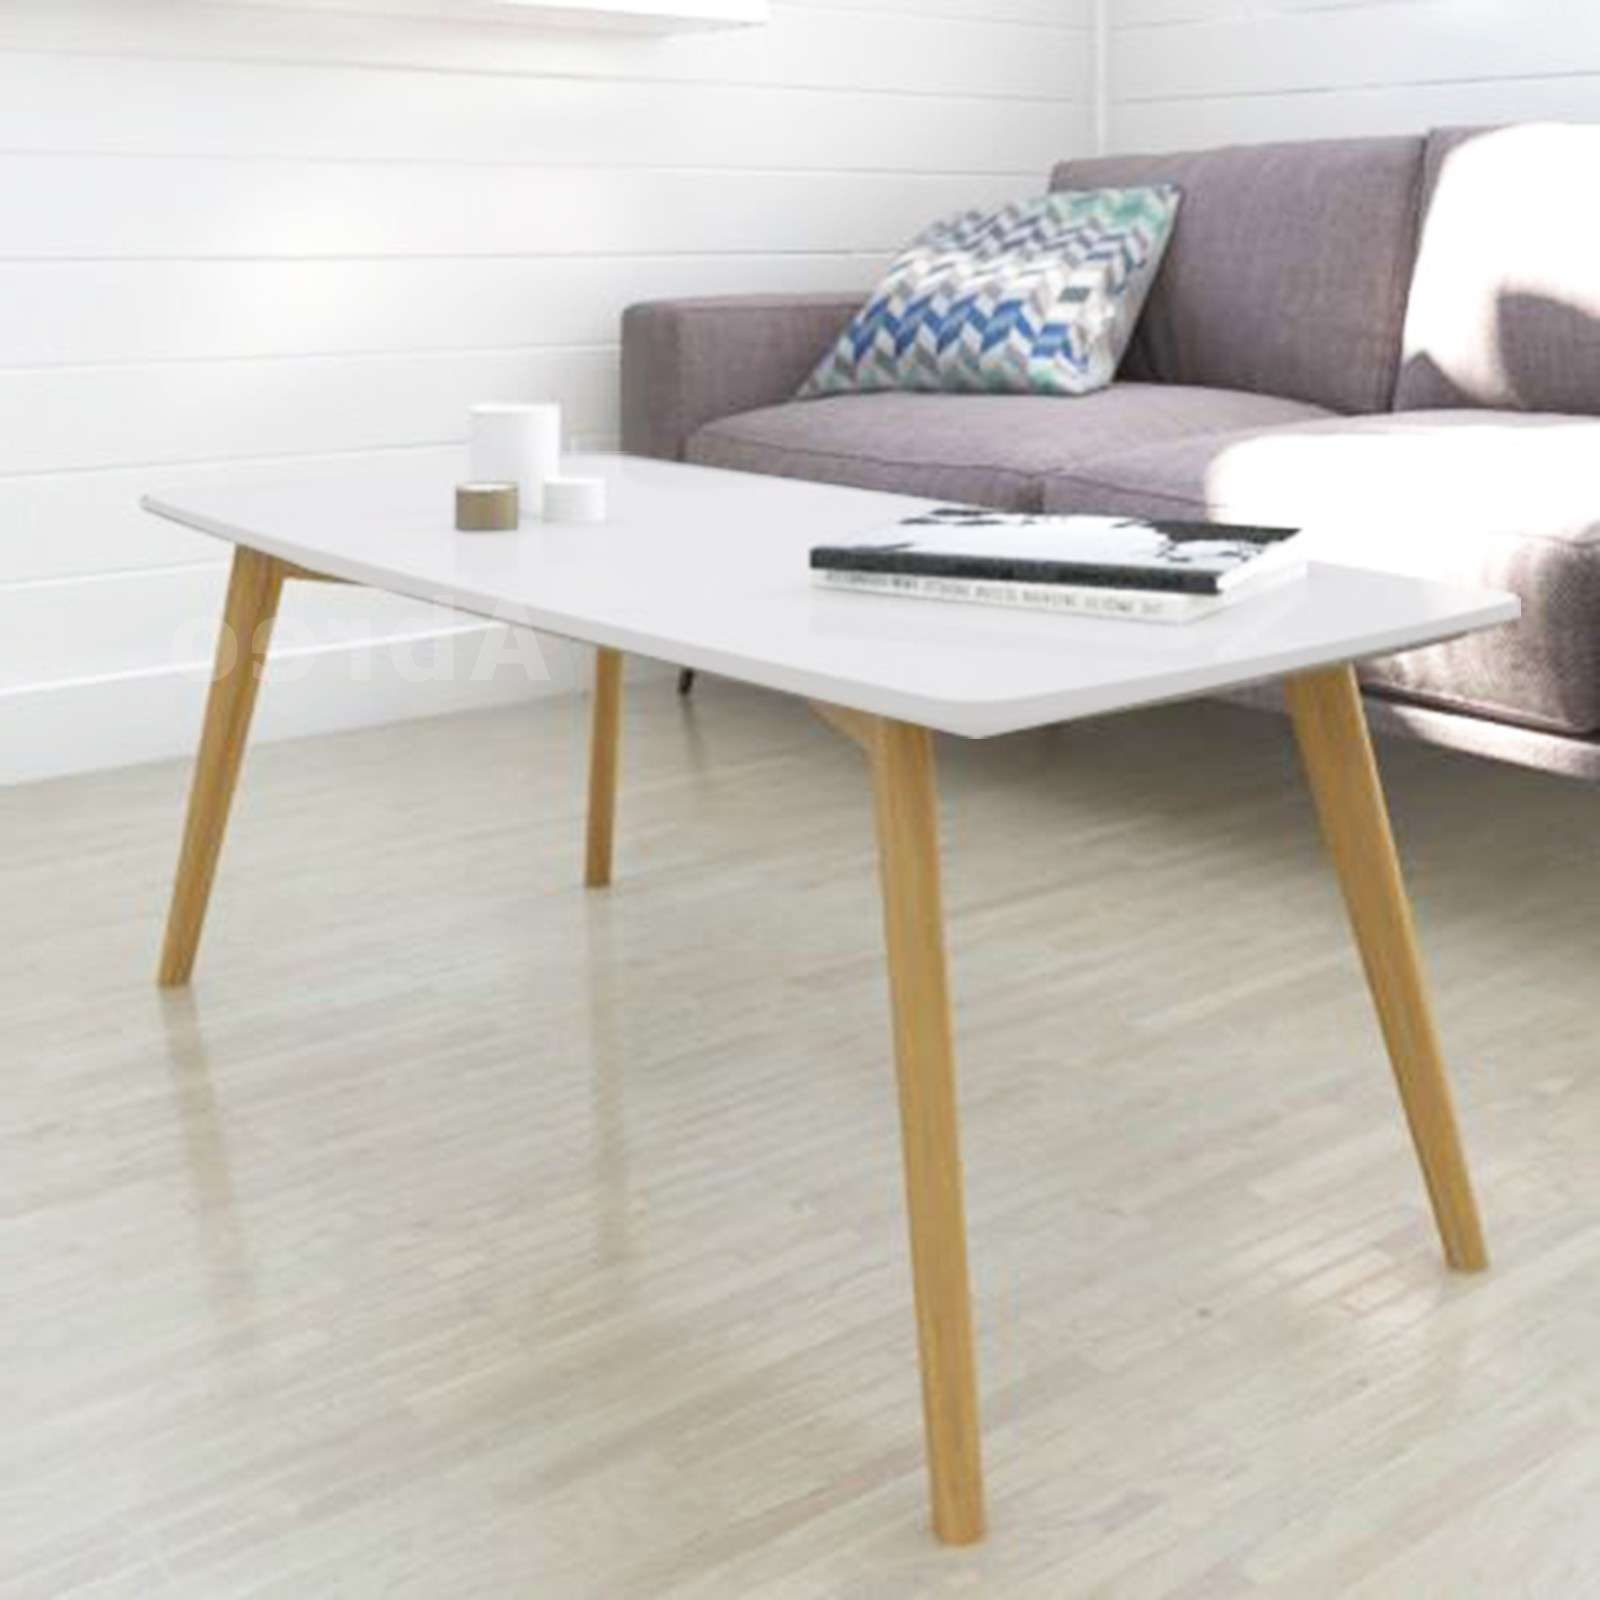 Scandinavian Retro Style Coffee Table Abreo Home Furniture For Latest Retro White Coffee Tables (View 13 of 20)